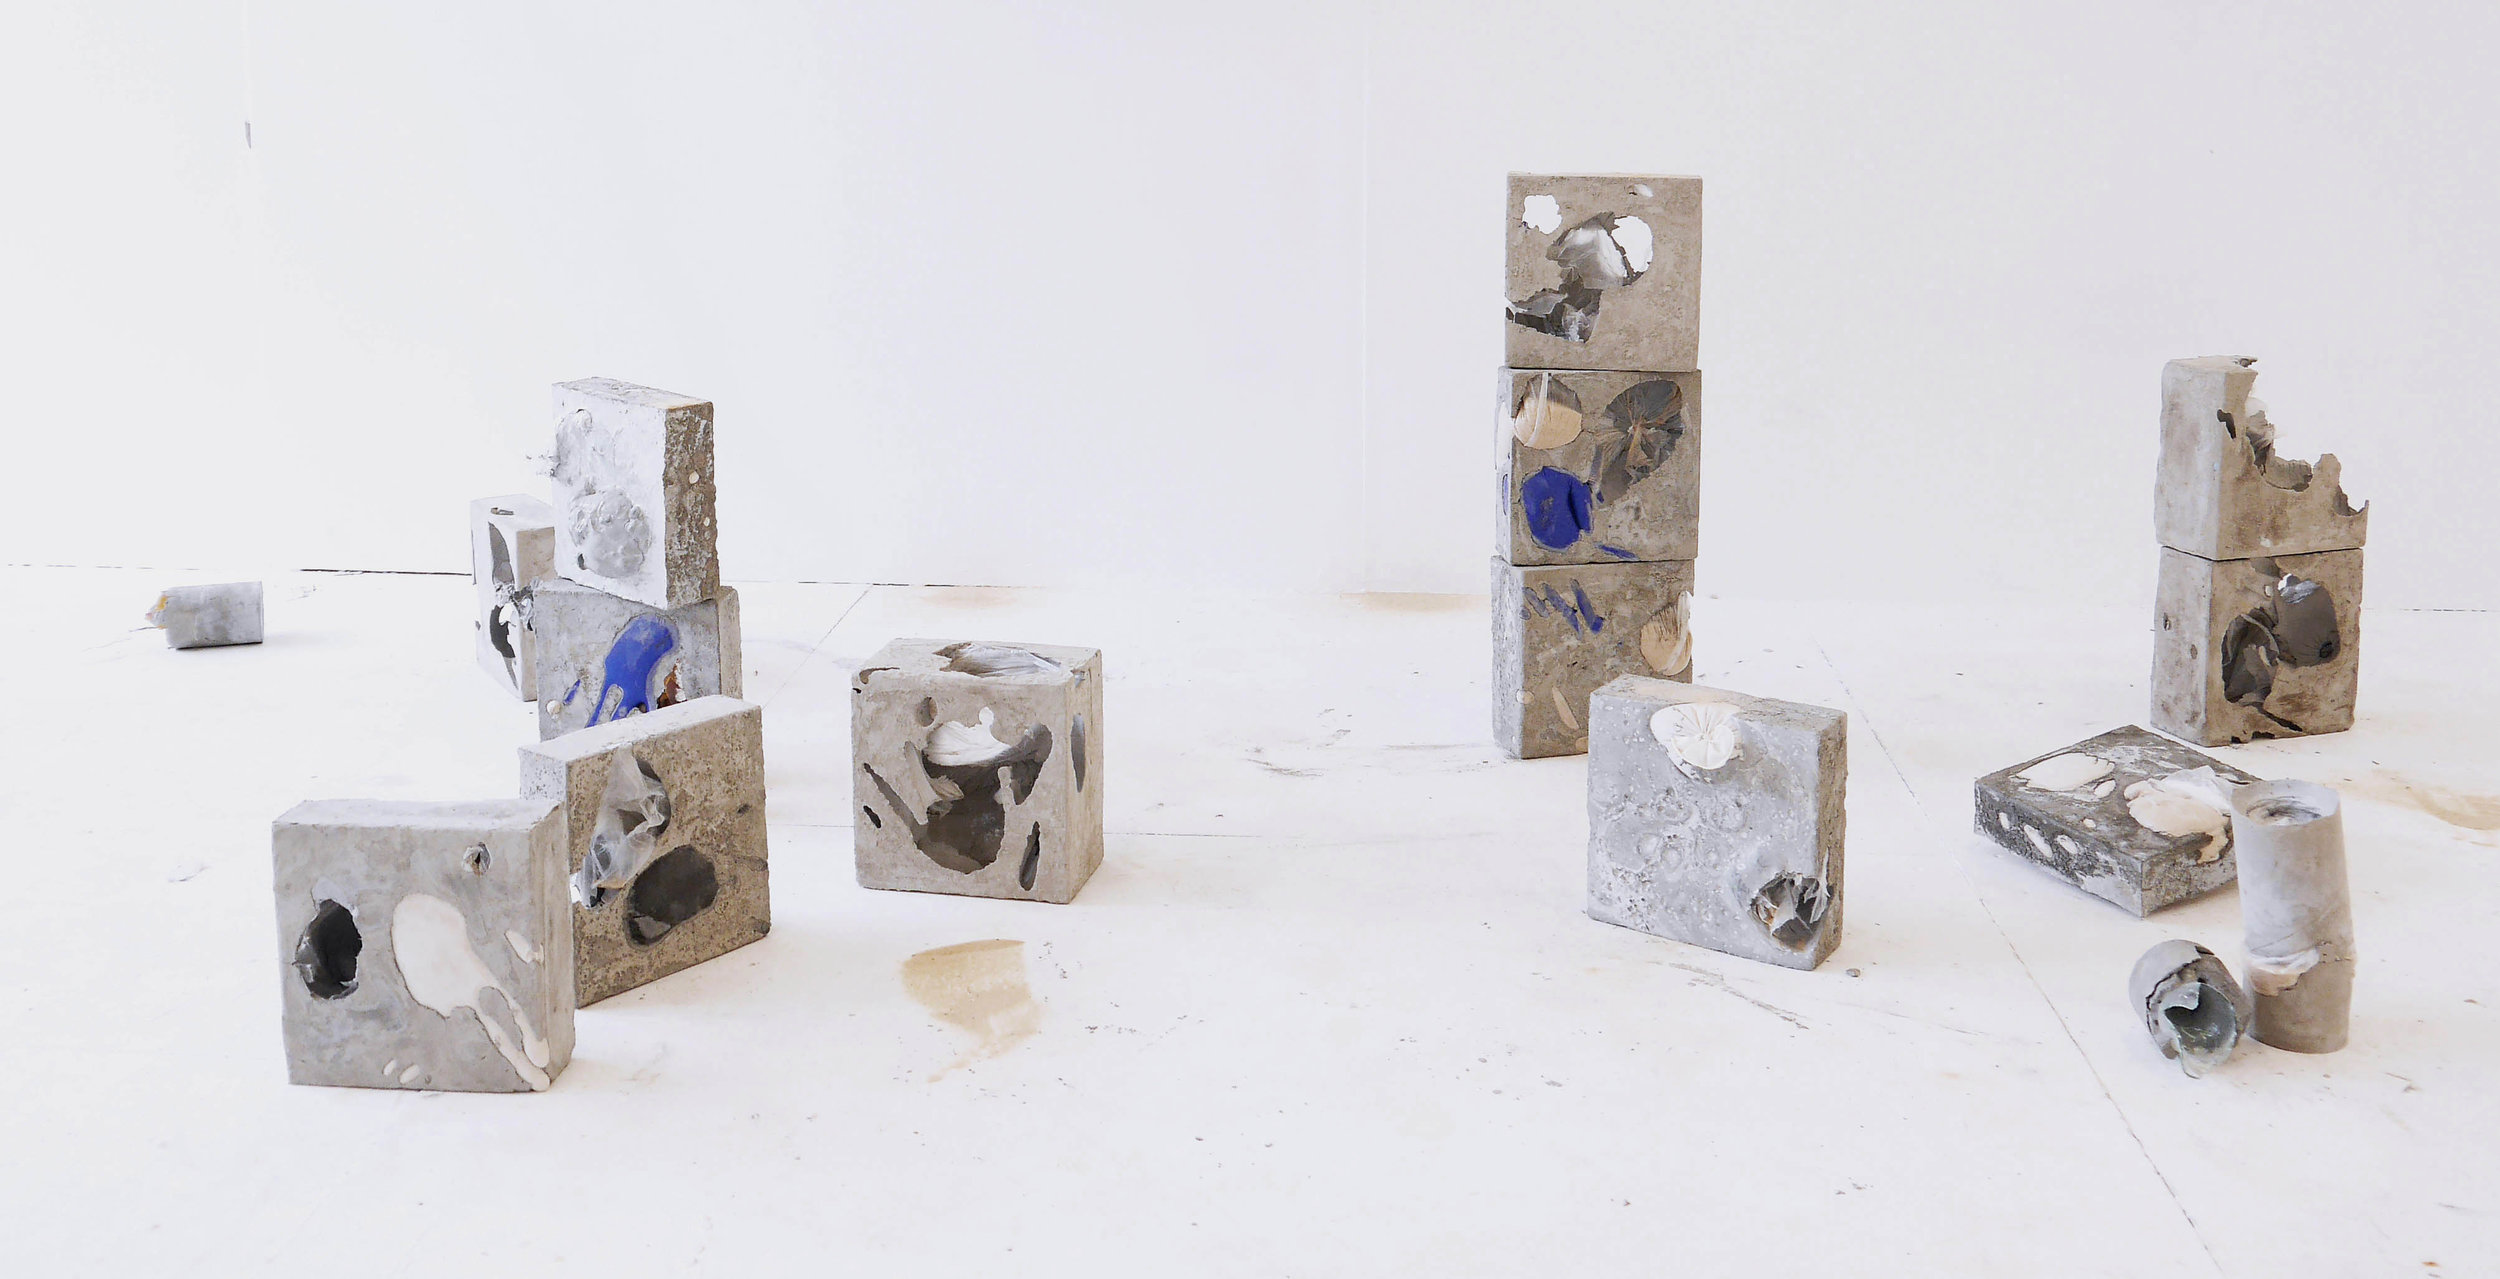 Rebeca Romero    Trick, Trap, Shifting Sands Concrete, sand, plastic crate, rubber, ceramic tiles, 2019